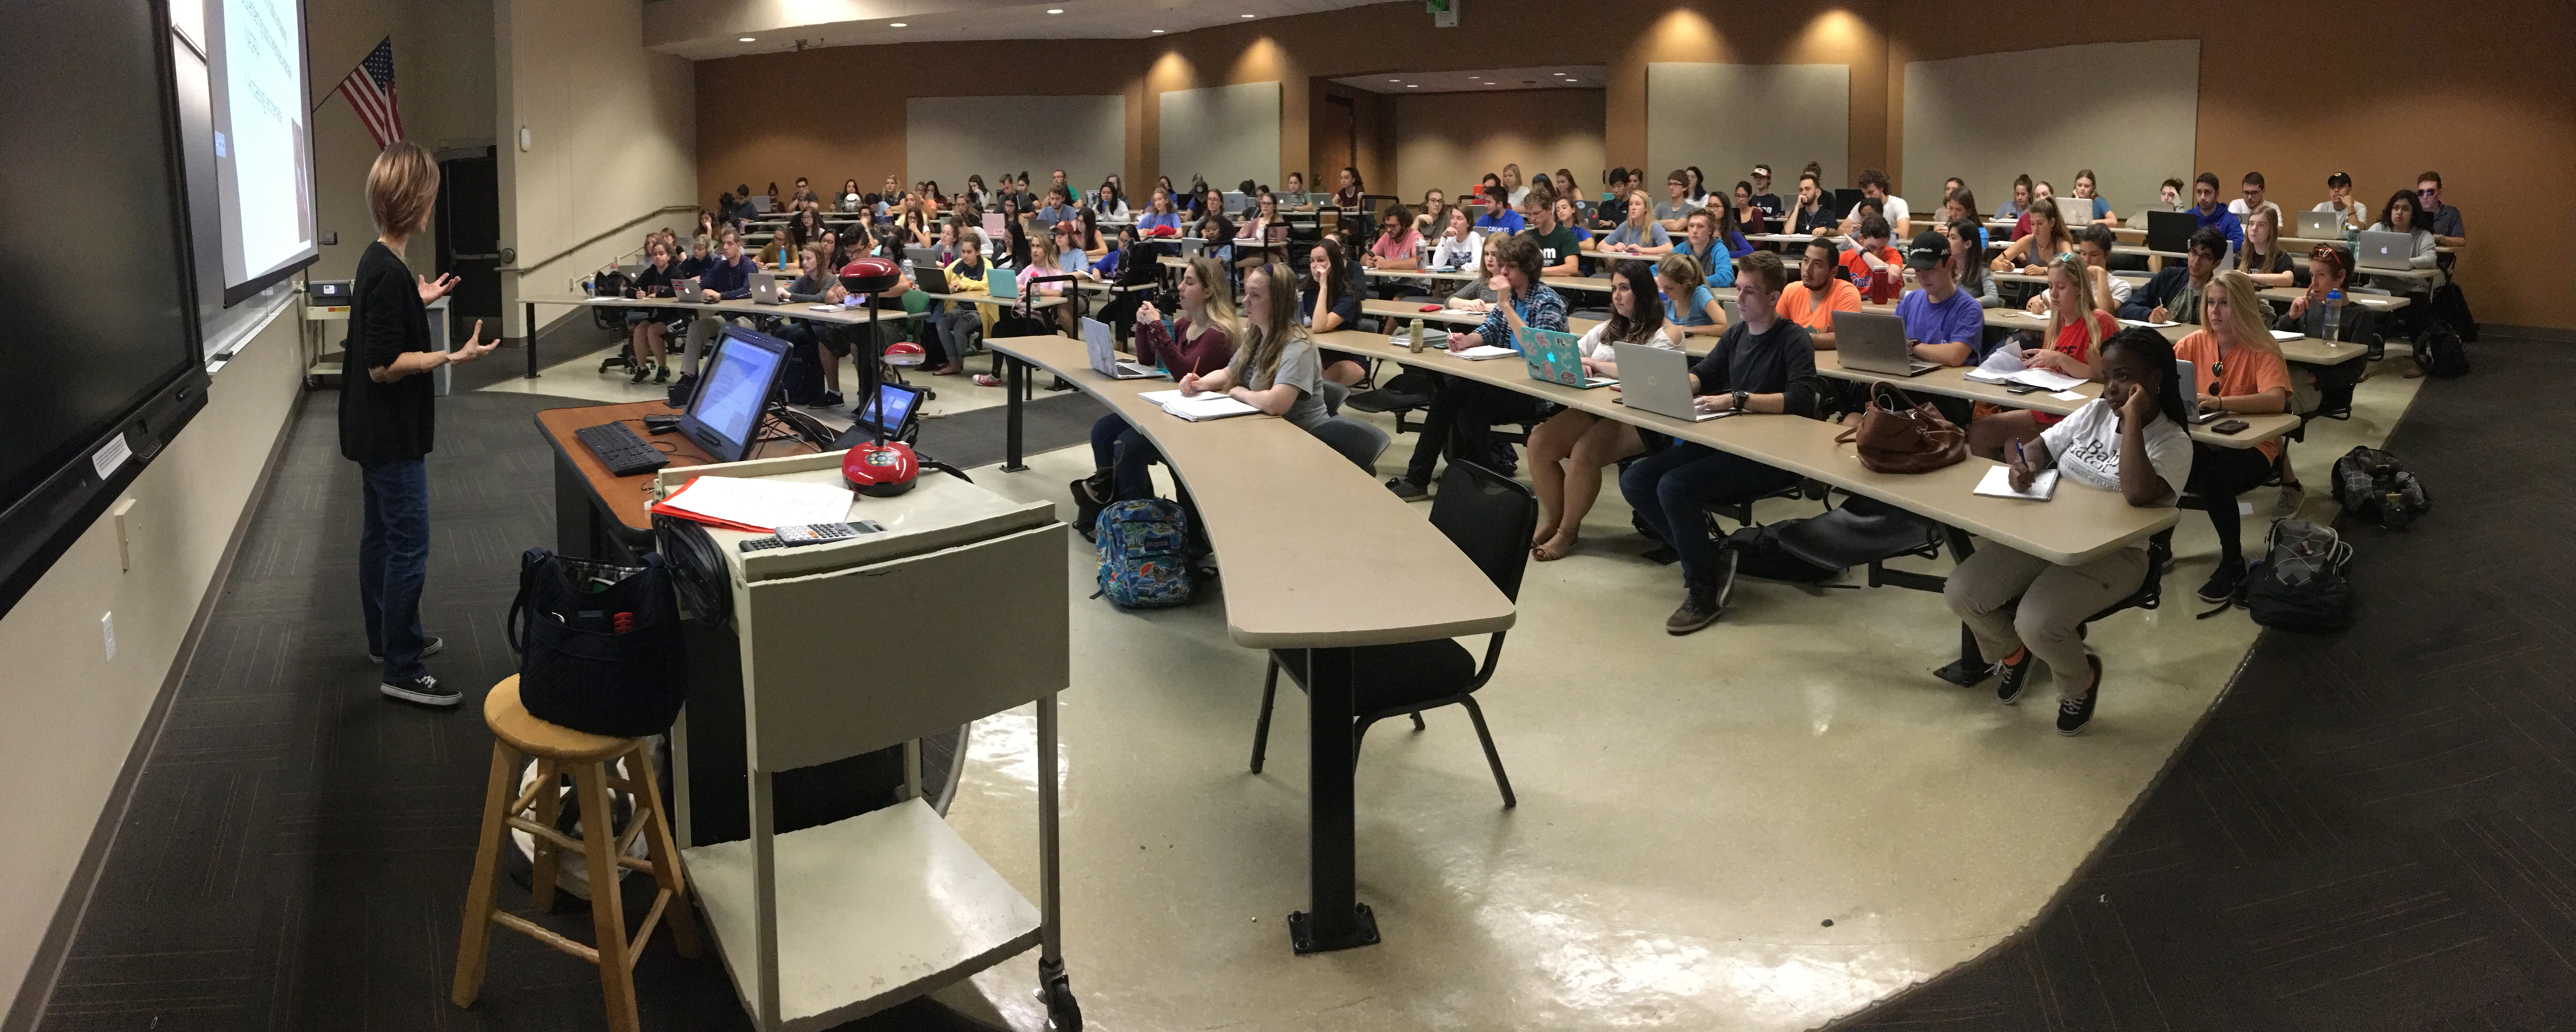 Image of ongoing anthropology lecture